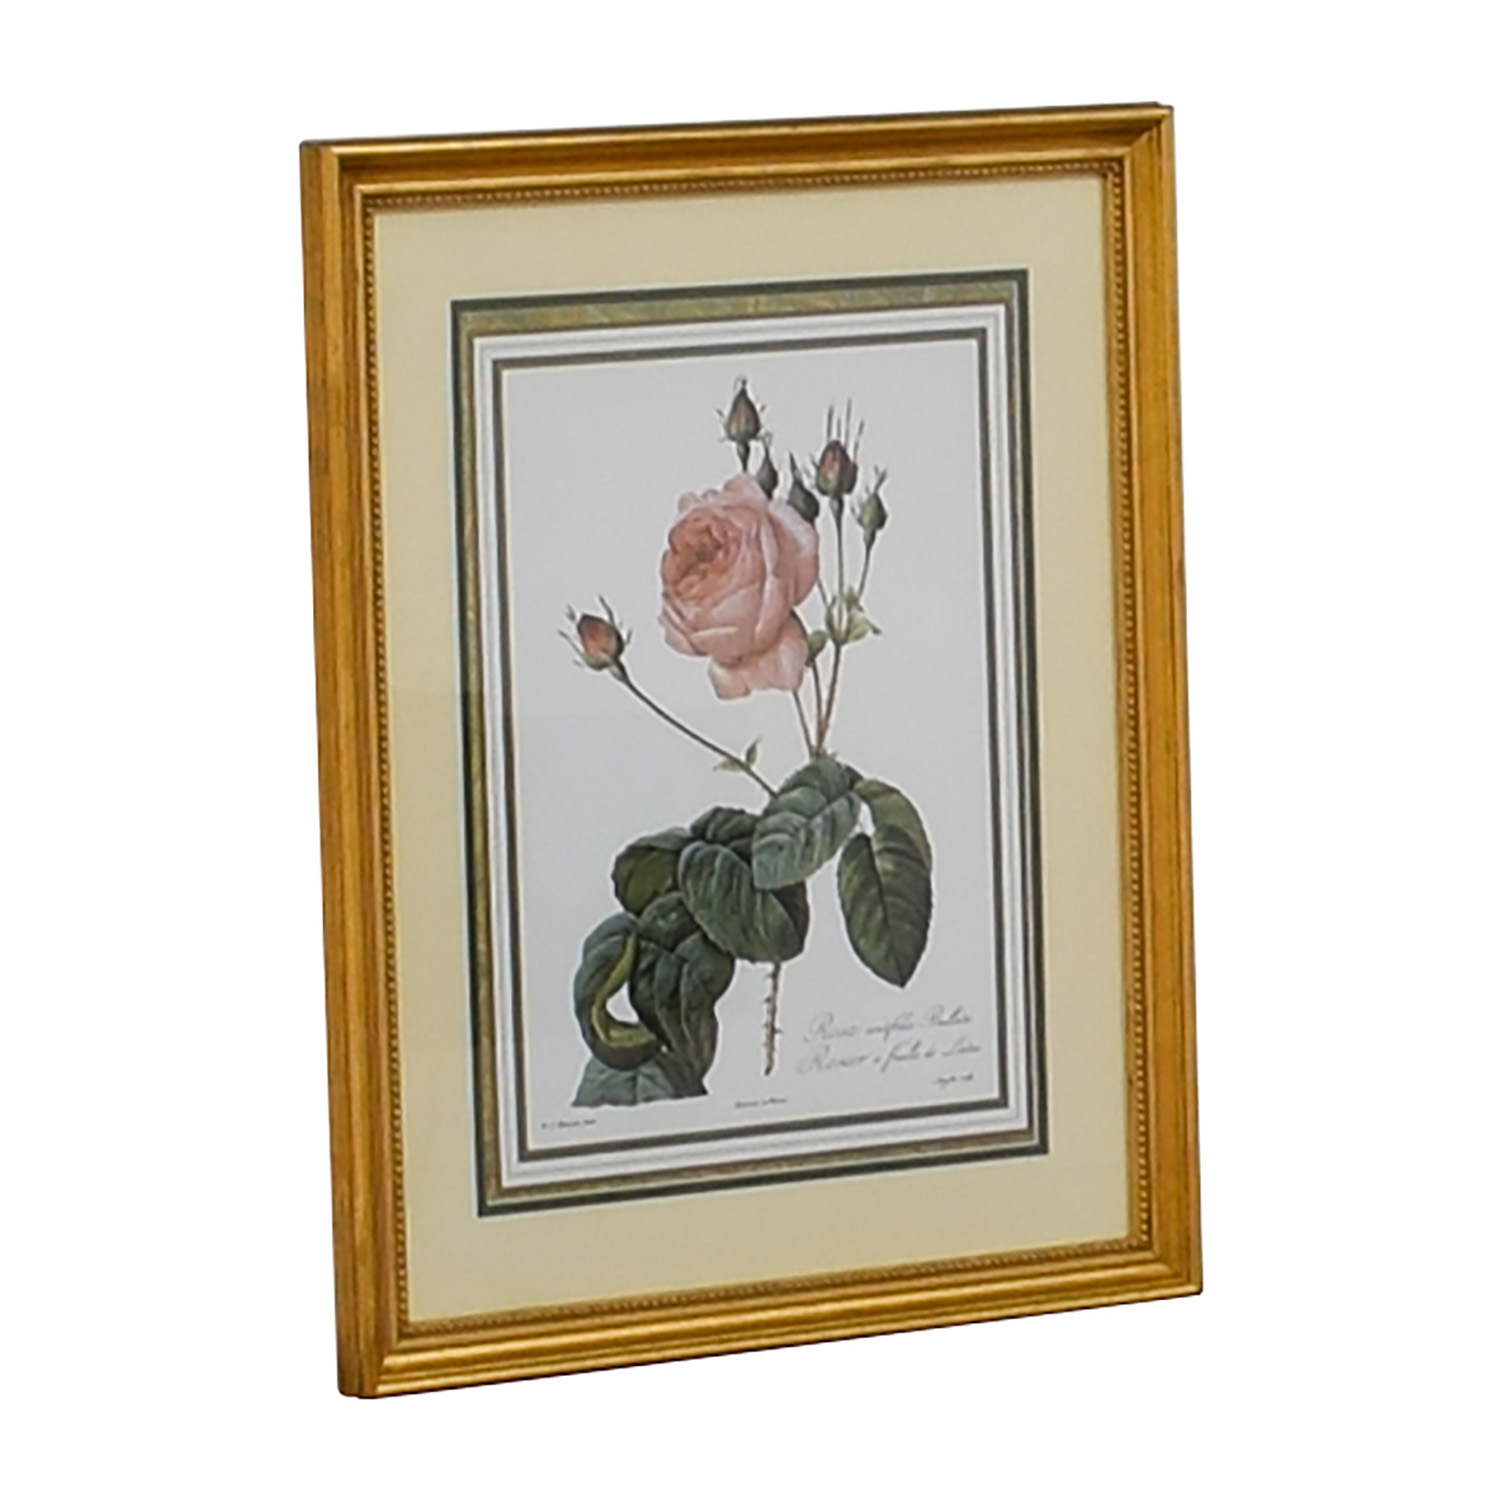 The Museum Collection The Museum Collection Rosier a Feuilles de Laitue Floral Print dimensions